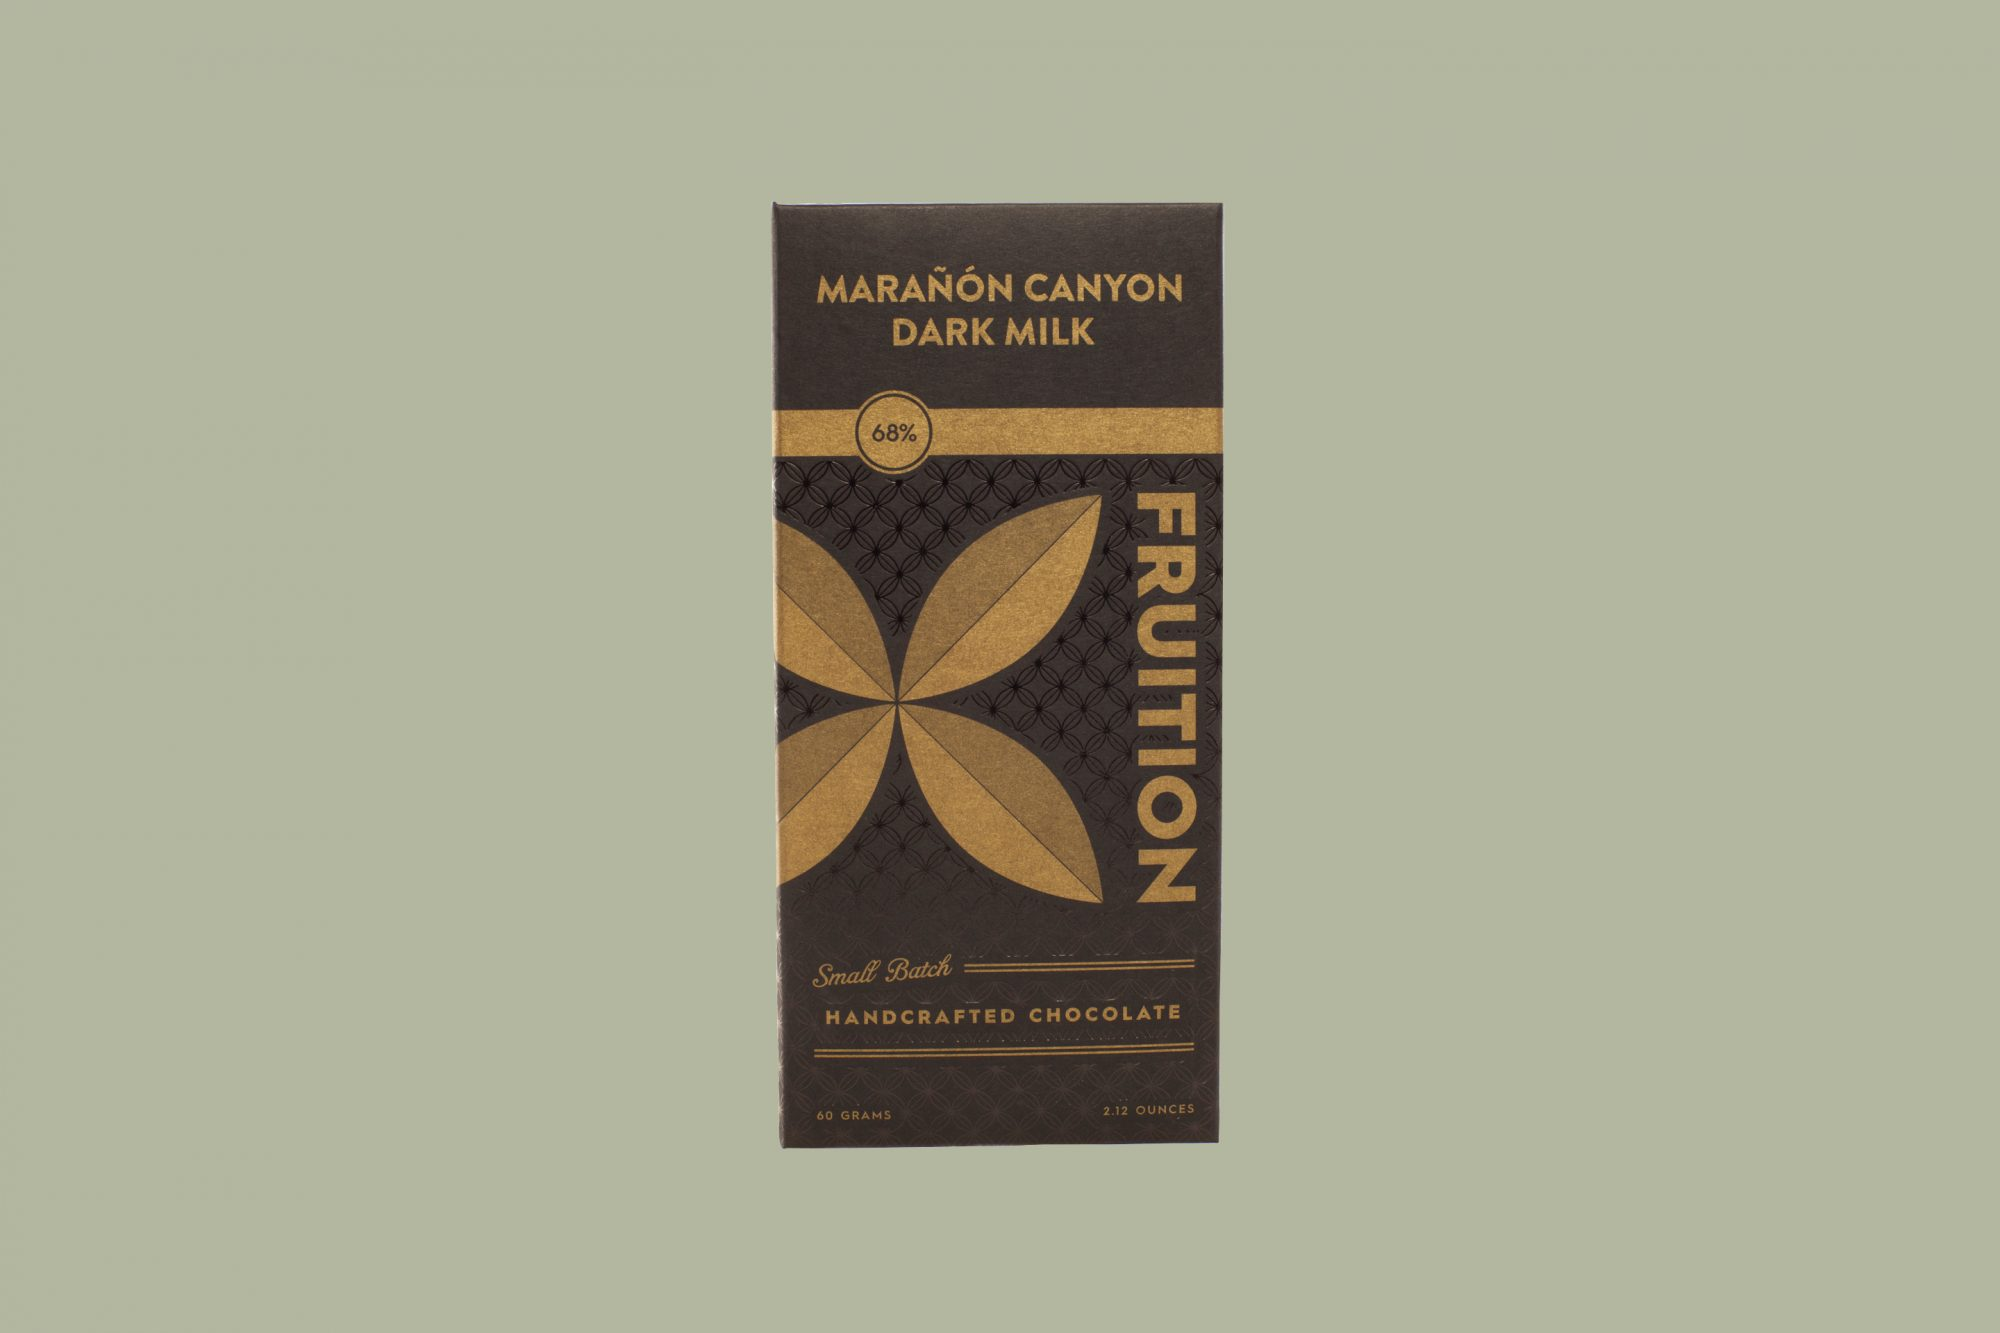 fruition dark milk chocolate bar